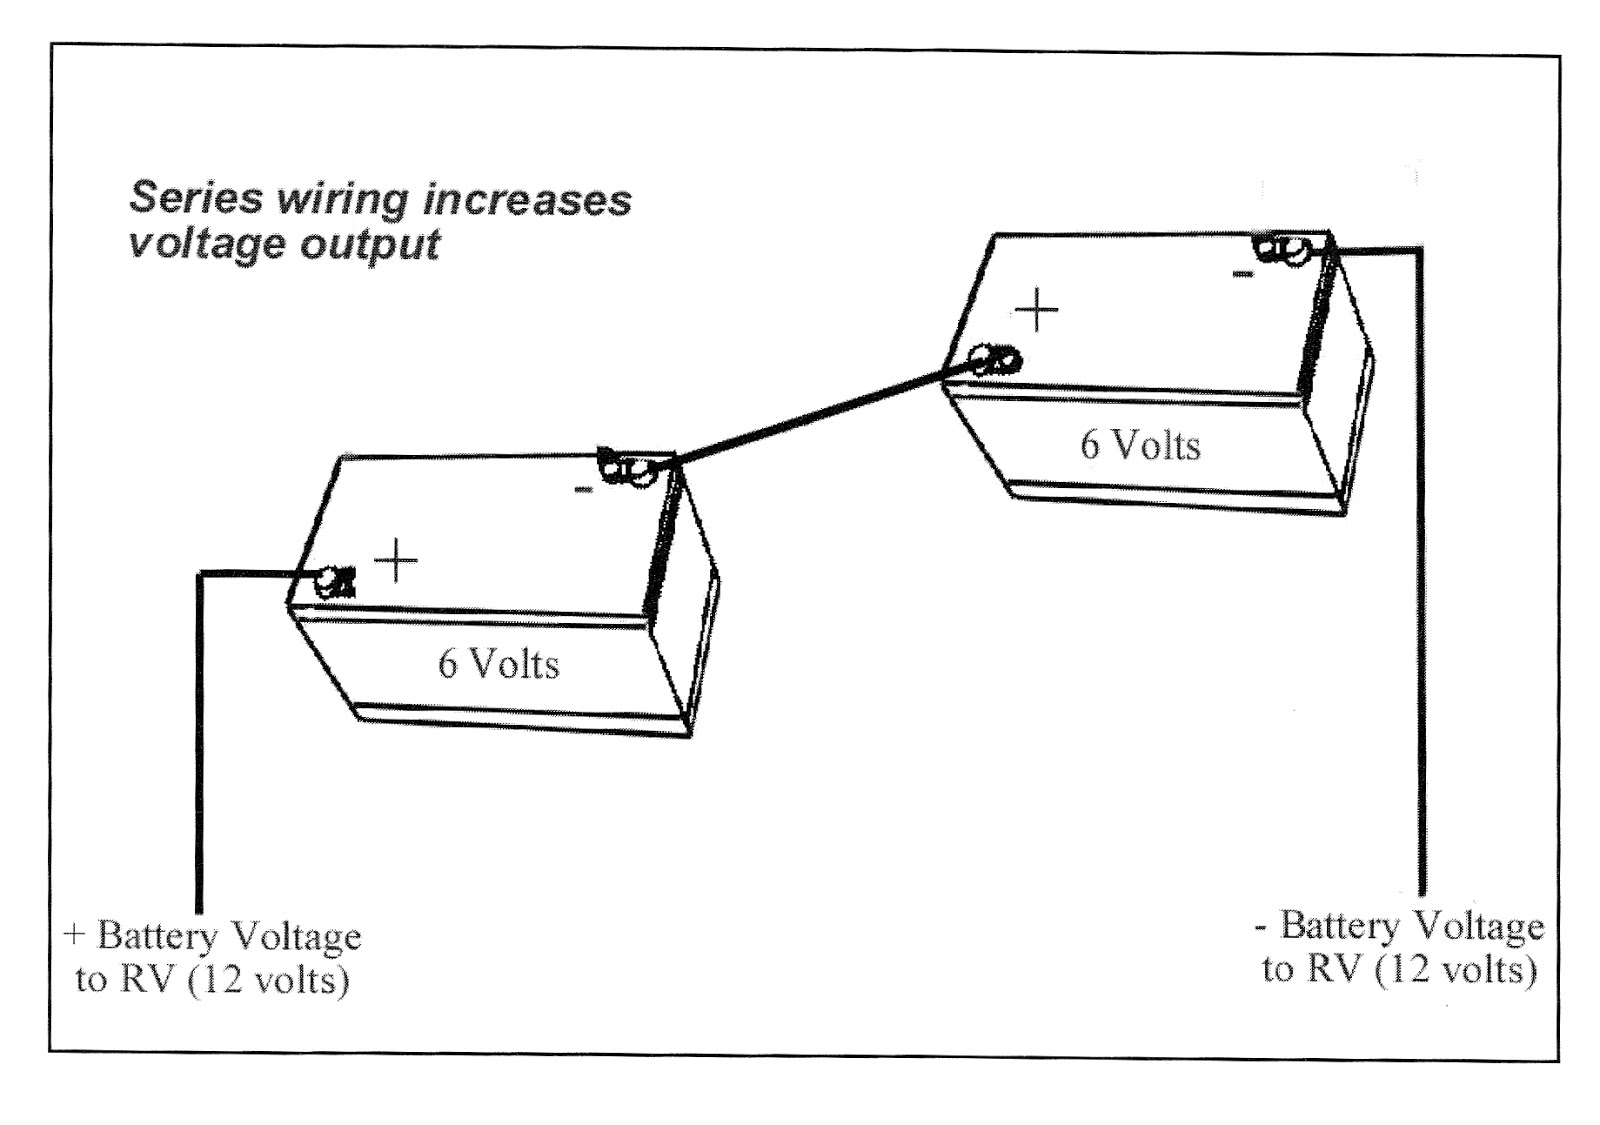 battery+series+wiring+diagram penny's tuppence (2 cents in brit) rv transmission 12v to 6v 6 Volt Positive Ground Wiring at et-consult.org